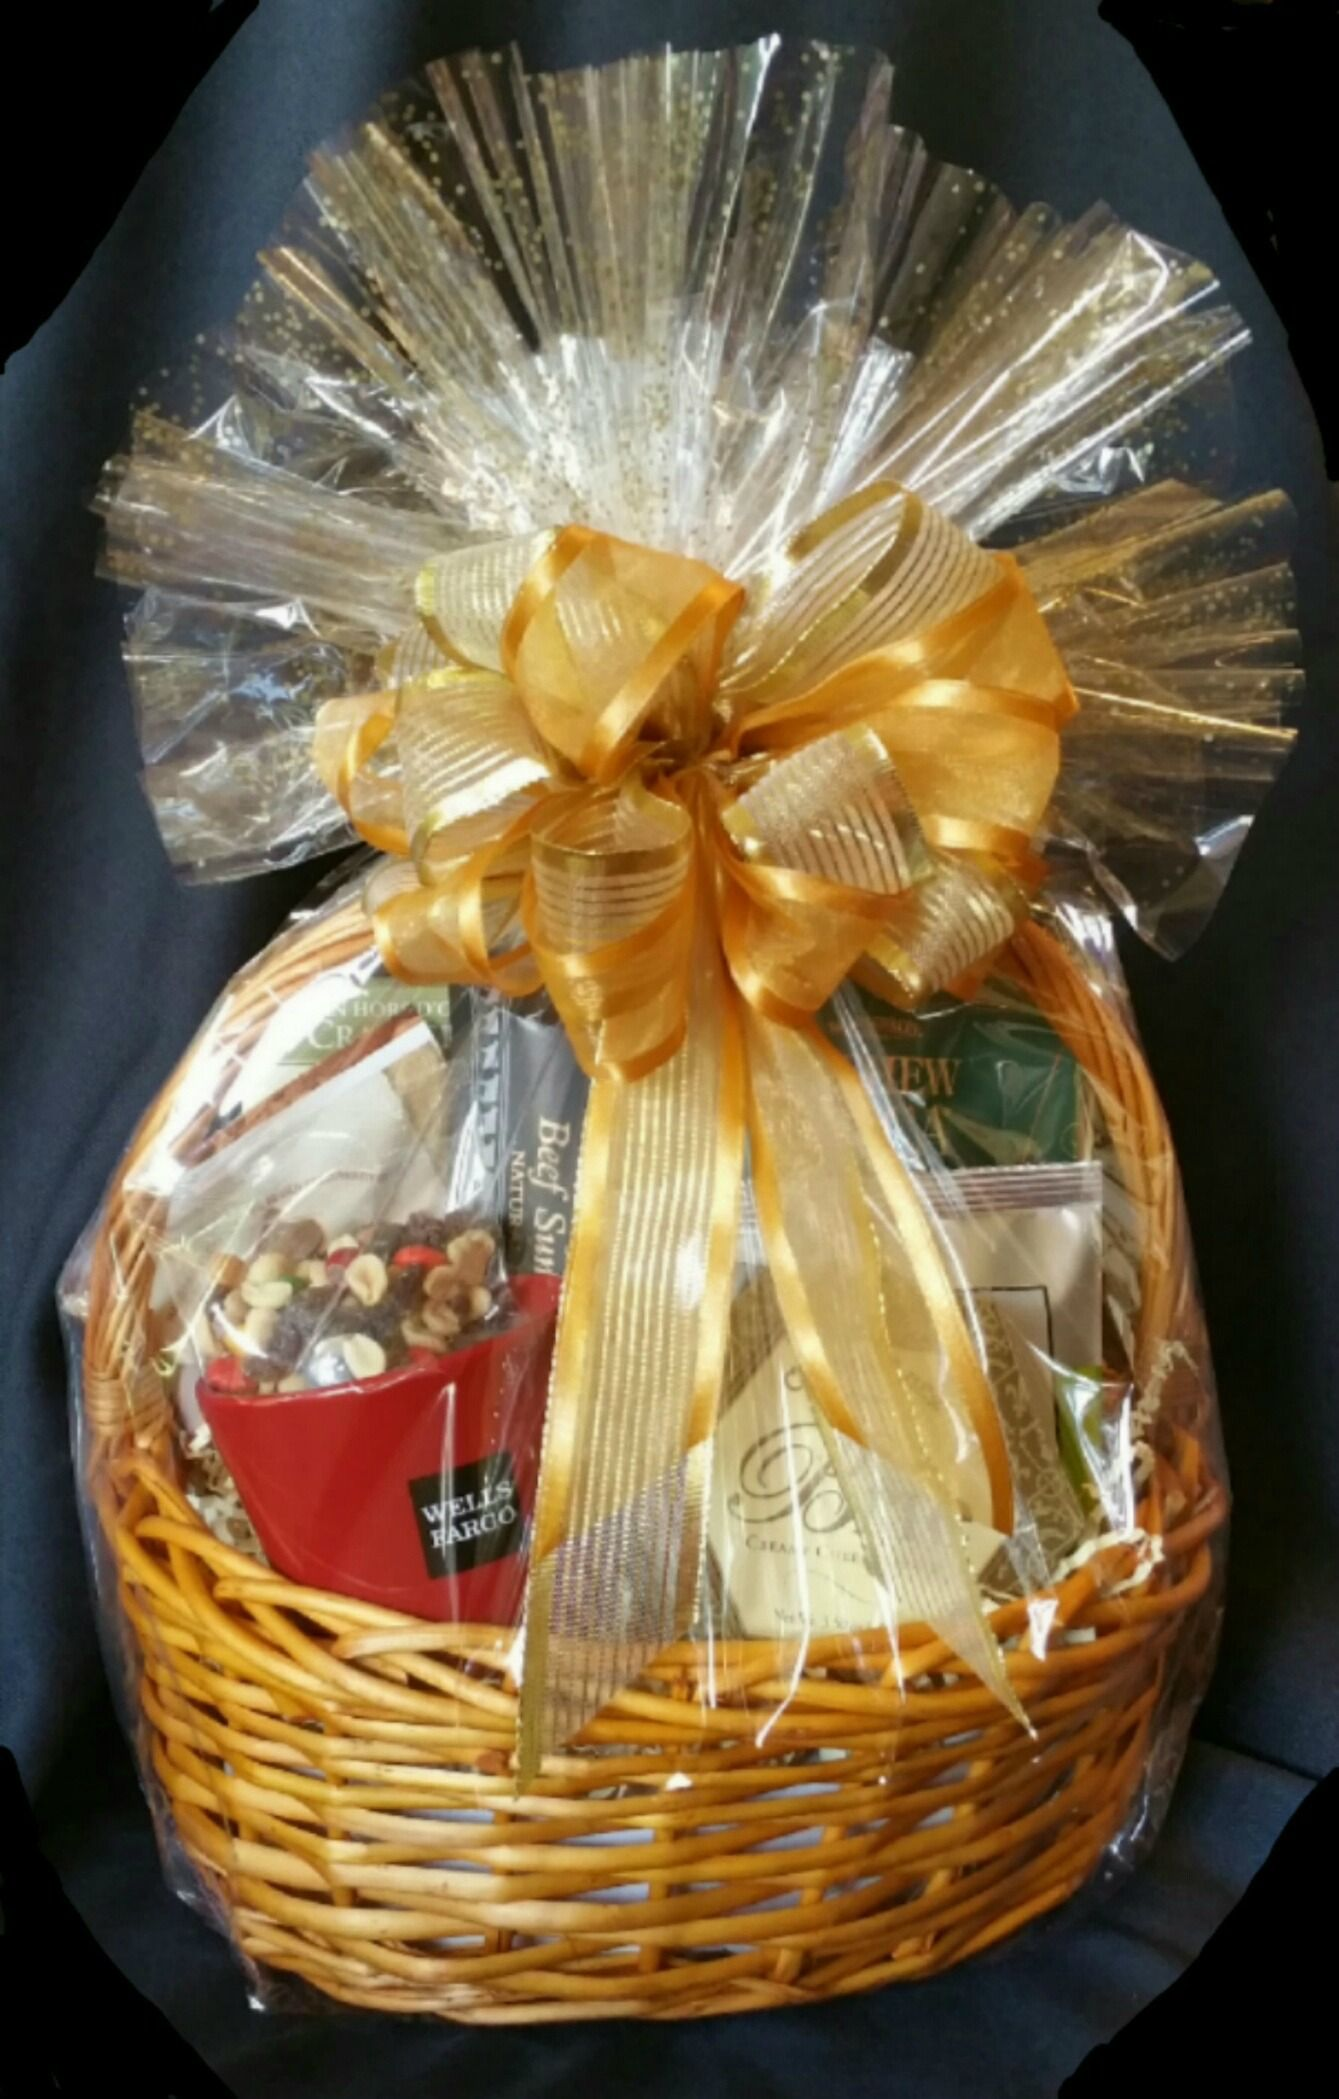 Corporate gift basket with marketing materials see coffee mug on corporate gift basket with marketing materials see coffee mug on lower left with company name negle Gallery